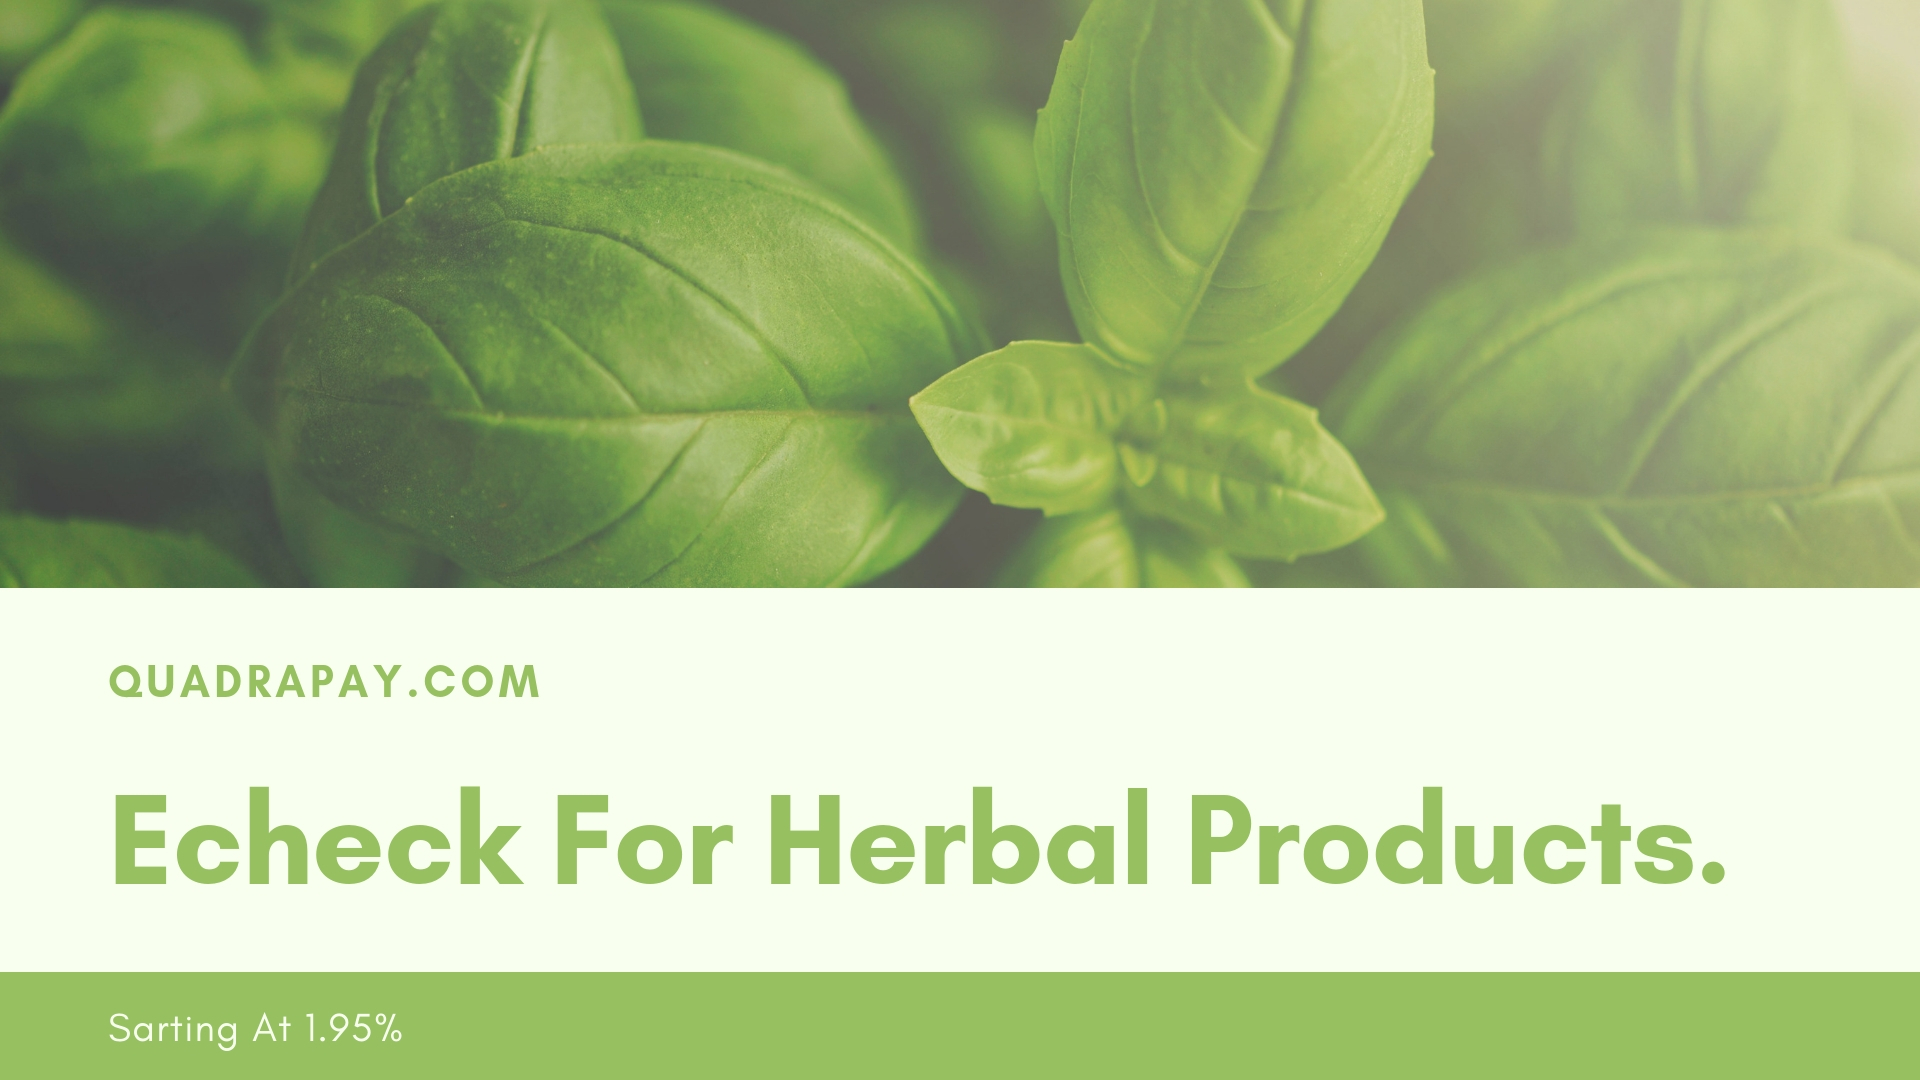 Echeck For Herbal Products